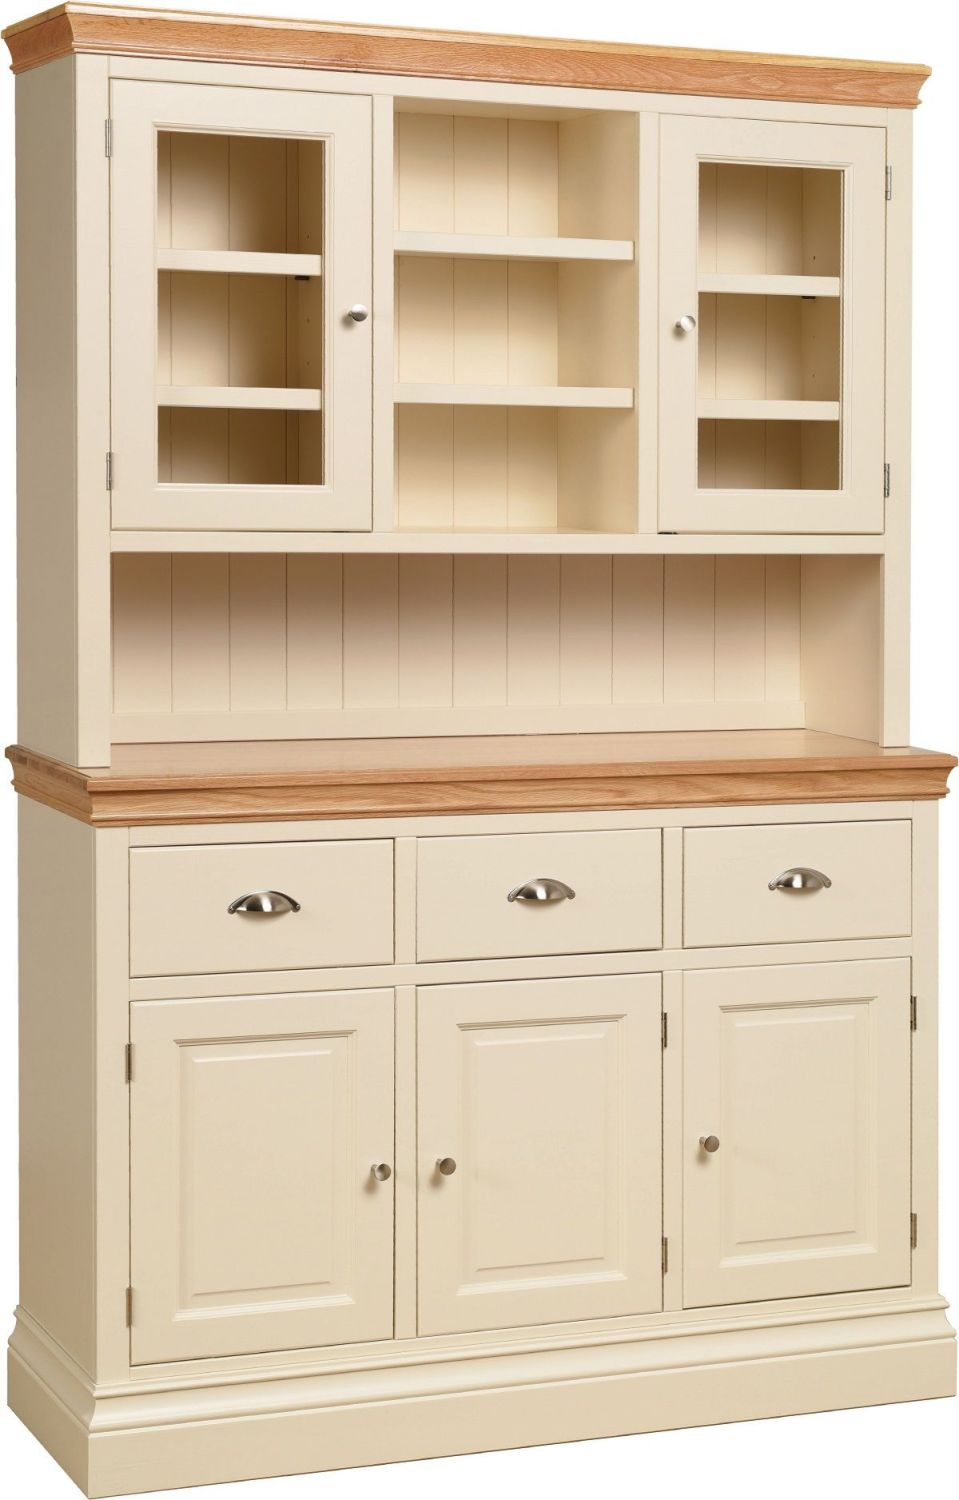 Amelia Dresser Glazed 3 Door in Ivory & Oak